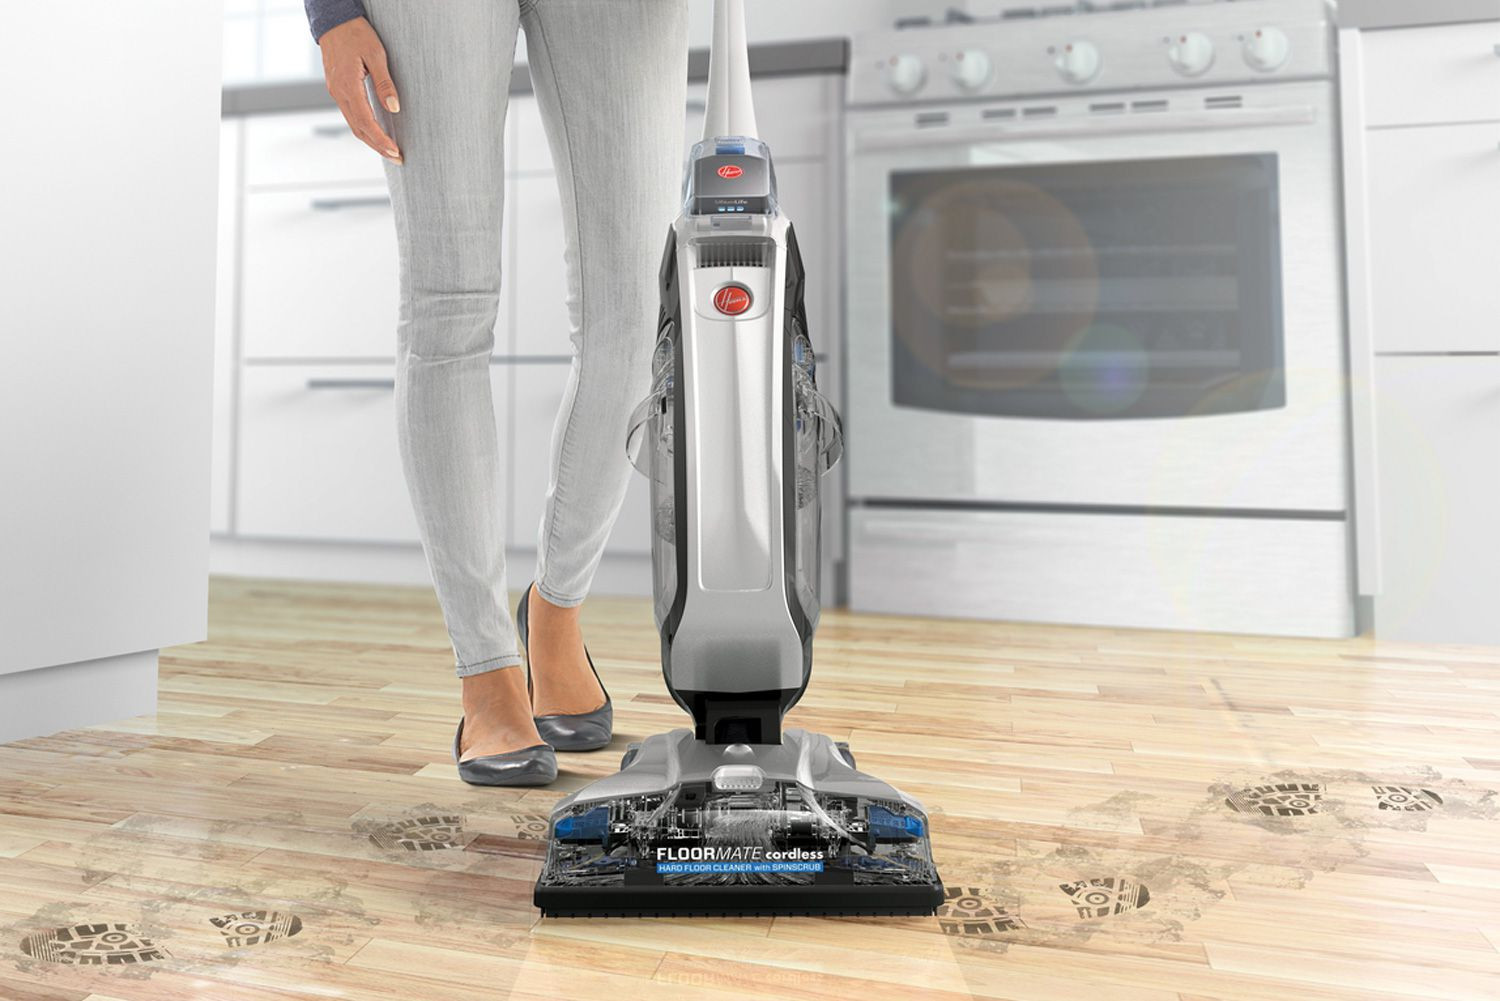 best hardwood floor cleaners 2016 of hoover floormate cleaner review with regard to hoover floormate 59a452af685fbe00102f4ce0